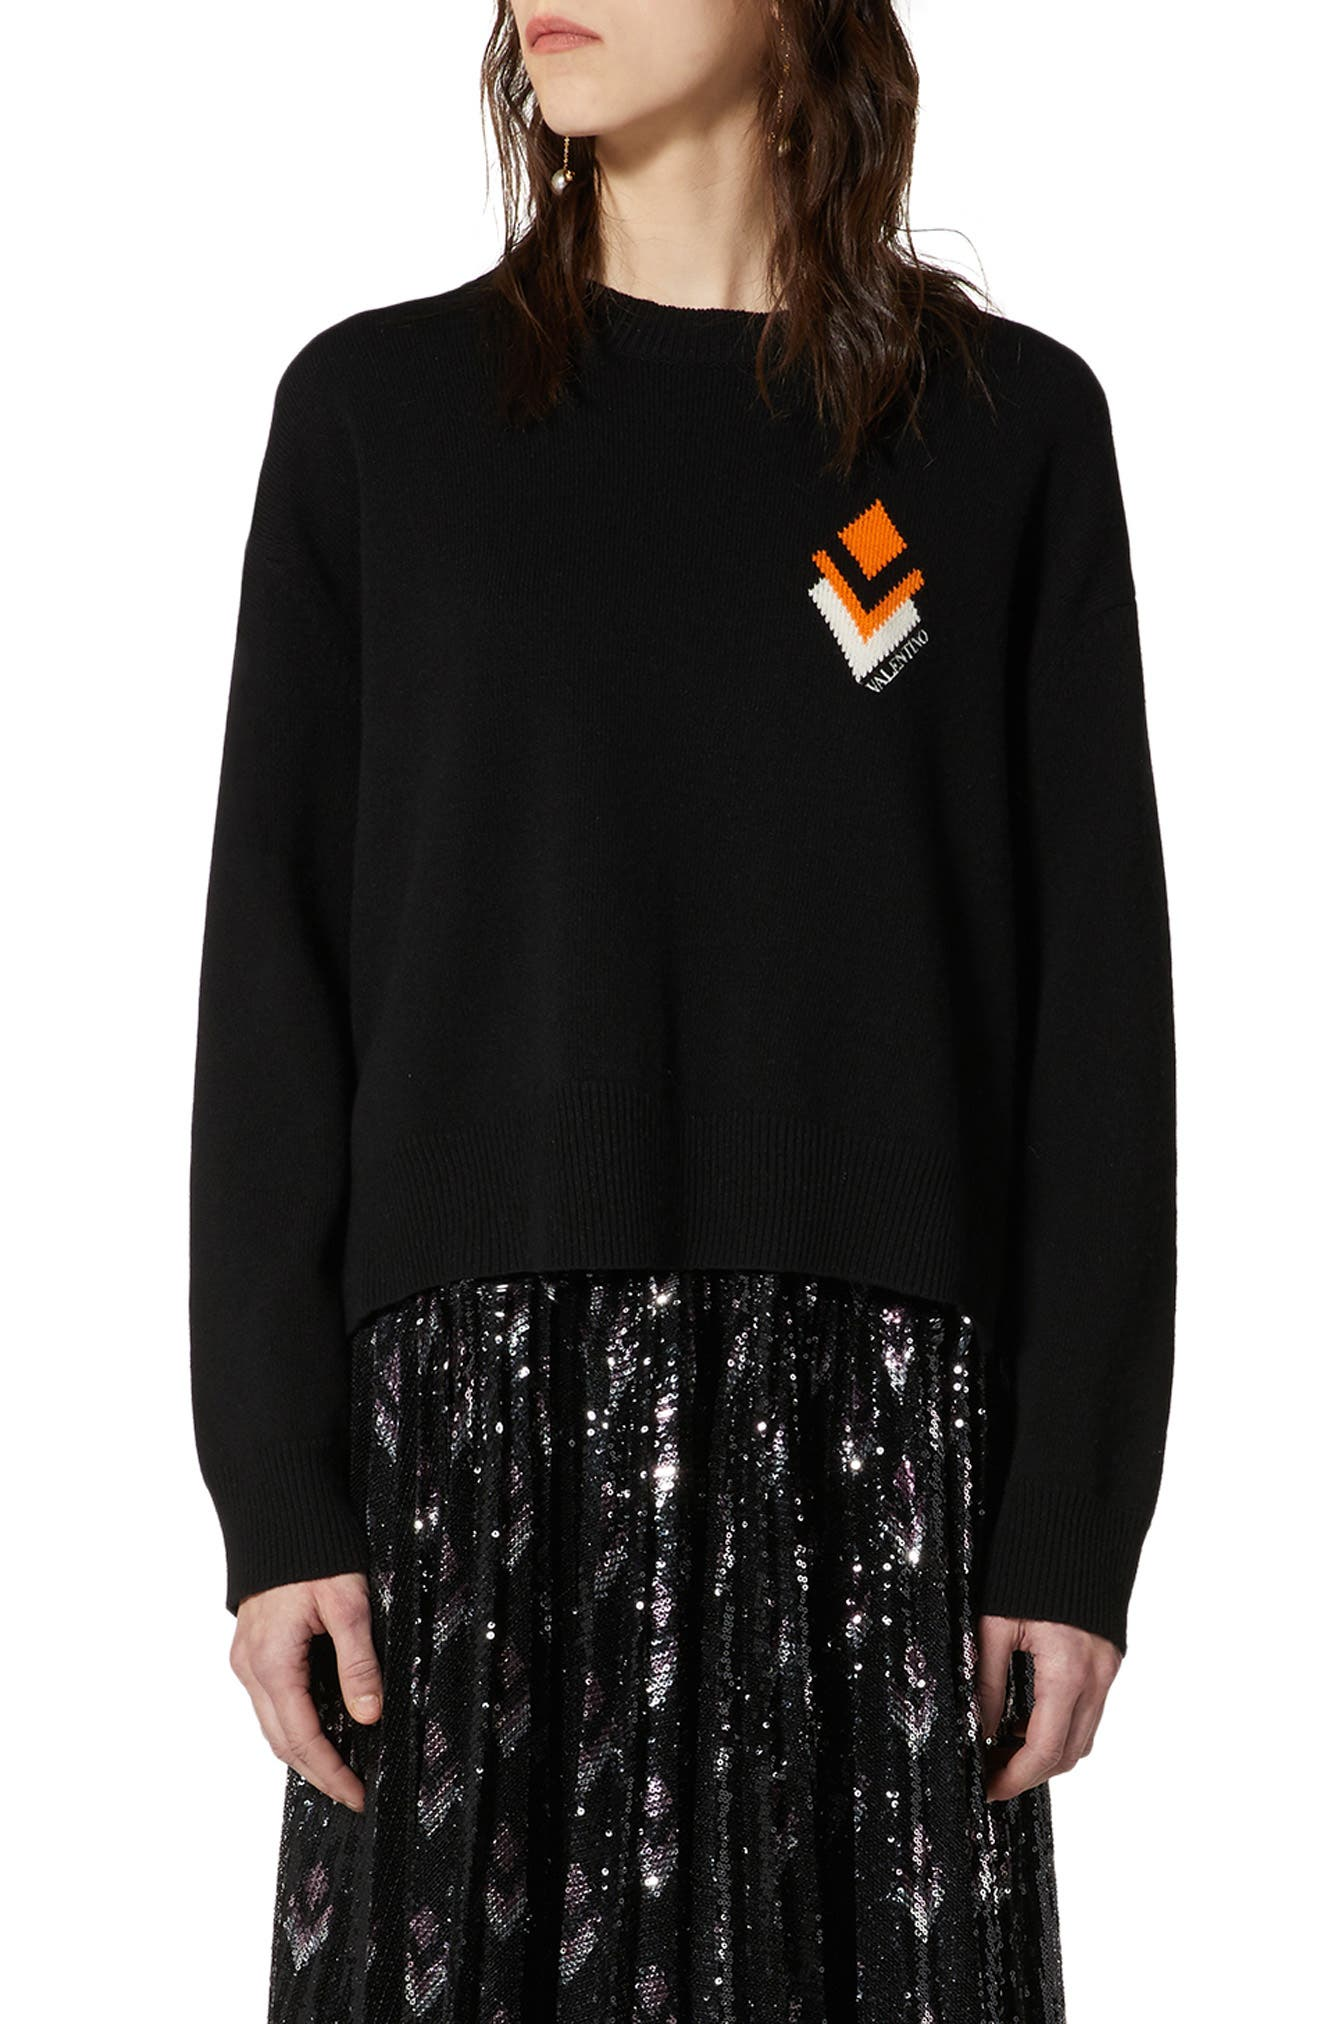 An intarsia arrow design and embroidered logo bring sharp style to an ultra-soft and cozy oversized sweater knit from a blend of virgin wool and cashmere. Style Name: Valentino Arrow Logo Oversize Wool & Cashmere Sweater. Style Number: 6013649. Available in stores.